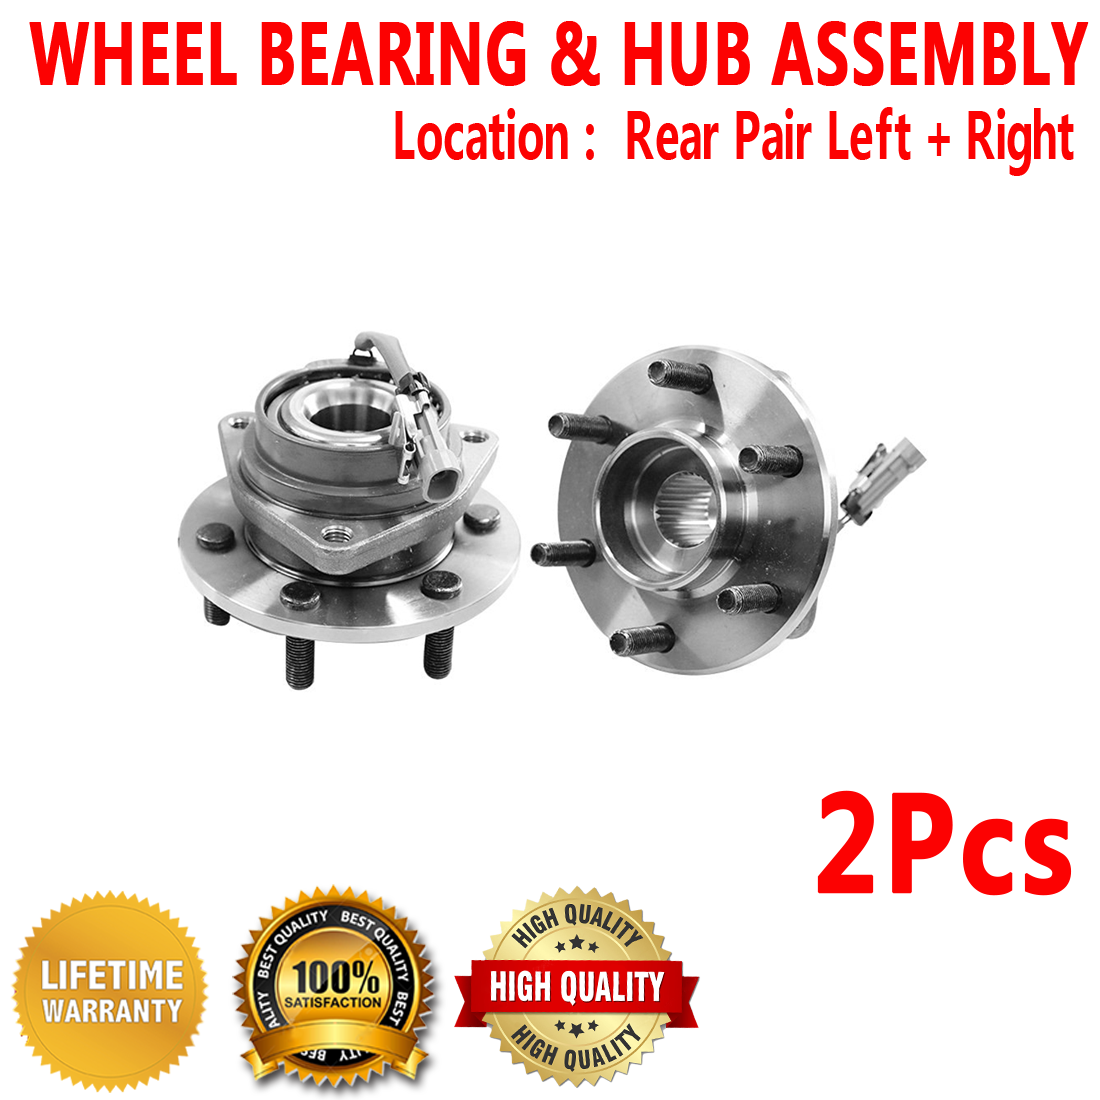 Included with Two Years Warranty 2004 fits Cadillac SRX Rear Wheel Bearing and Hub Assembly Left and Right - Two Bearings Note: AWD RWD